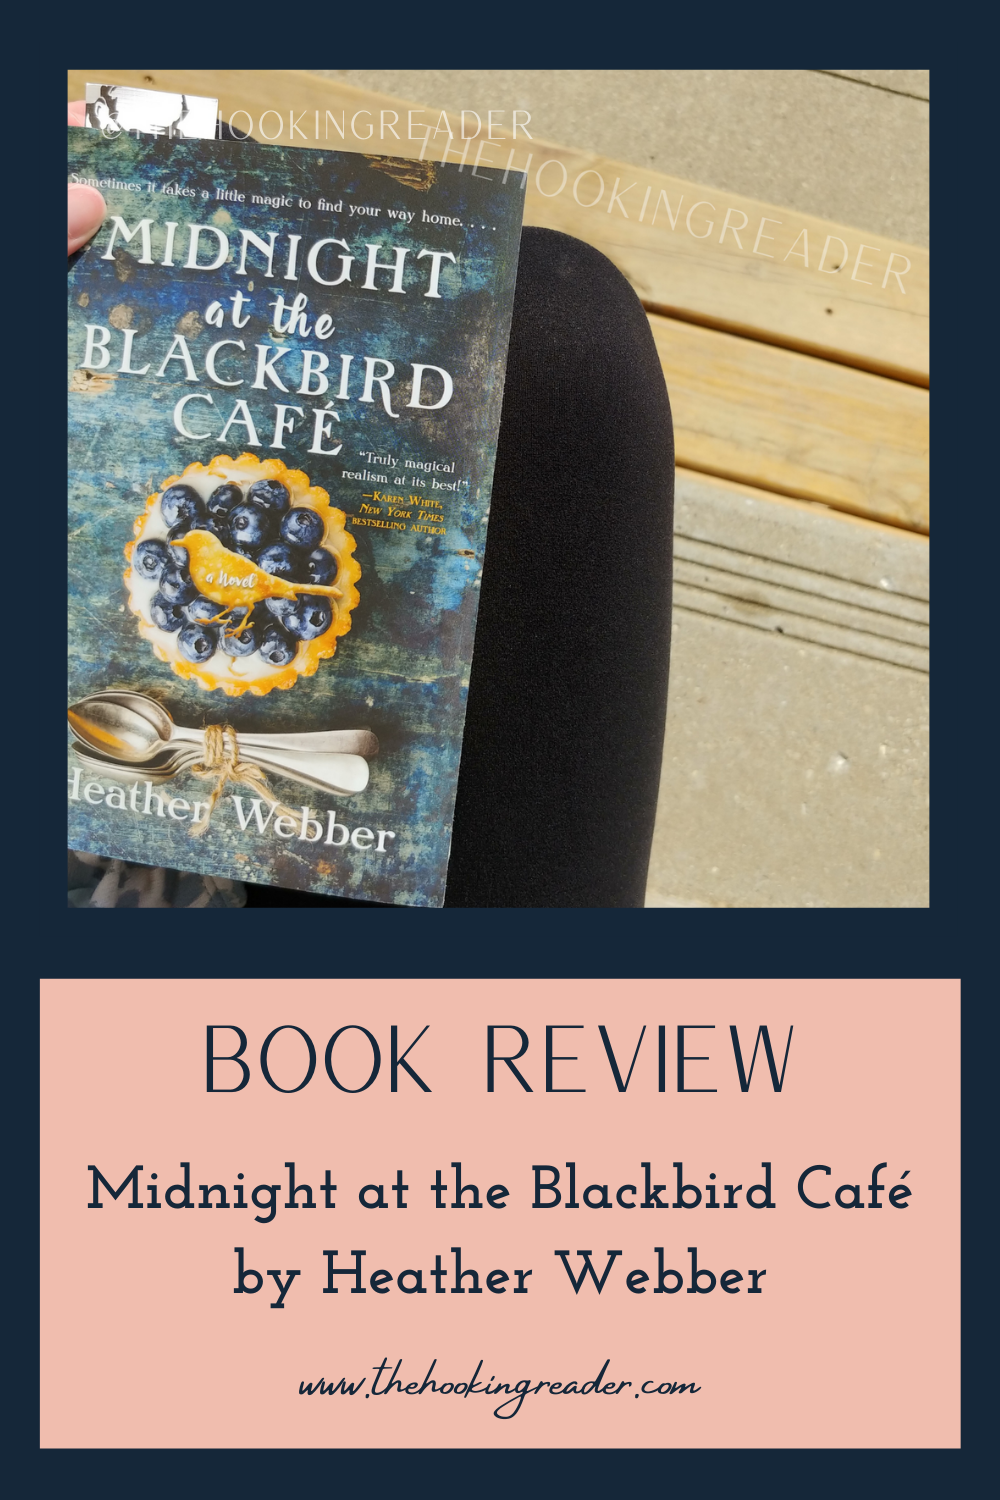 Book Review: Midnight at the Blackbird Café by Heather Webber